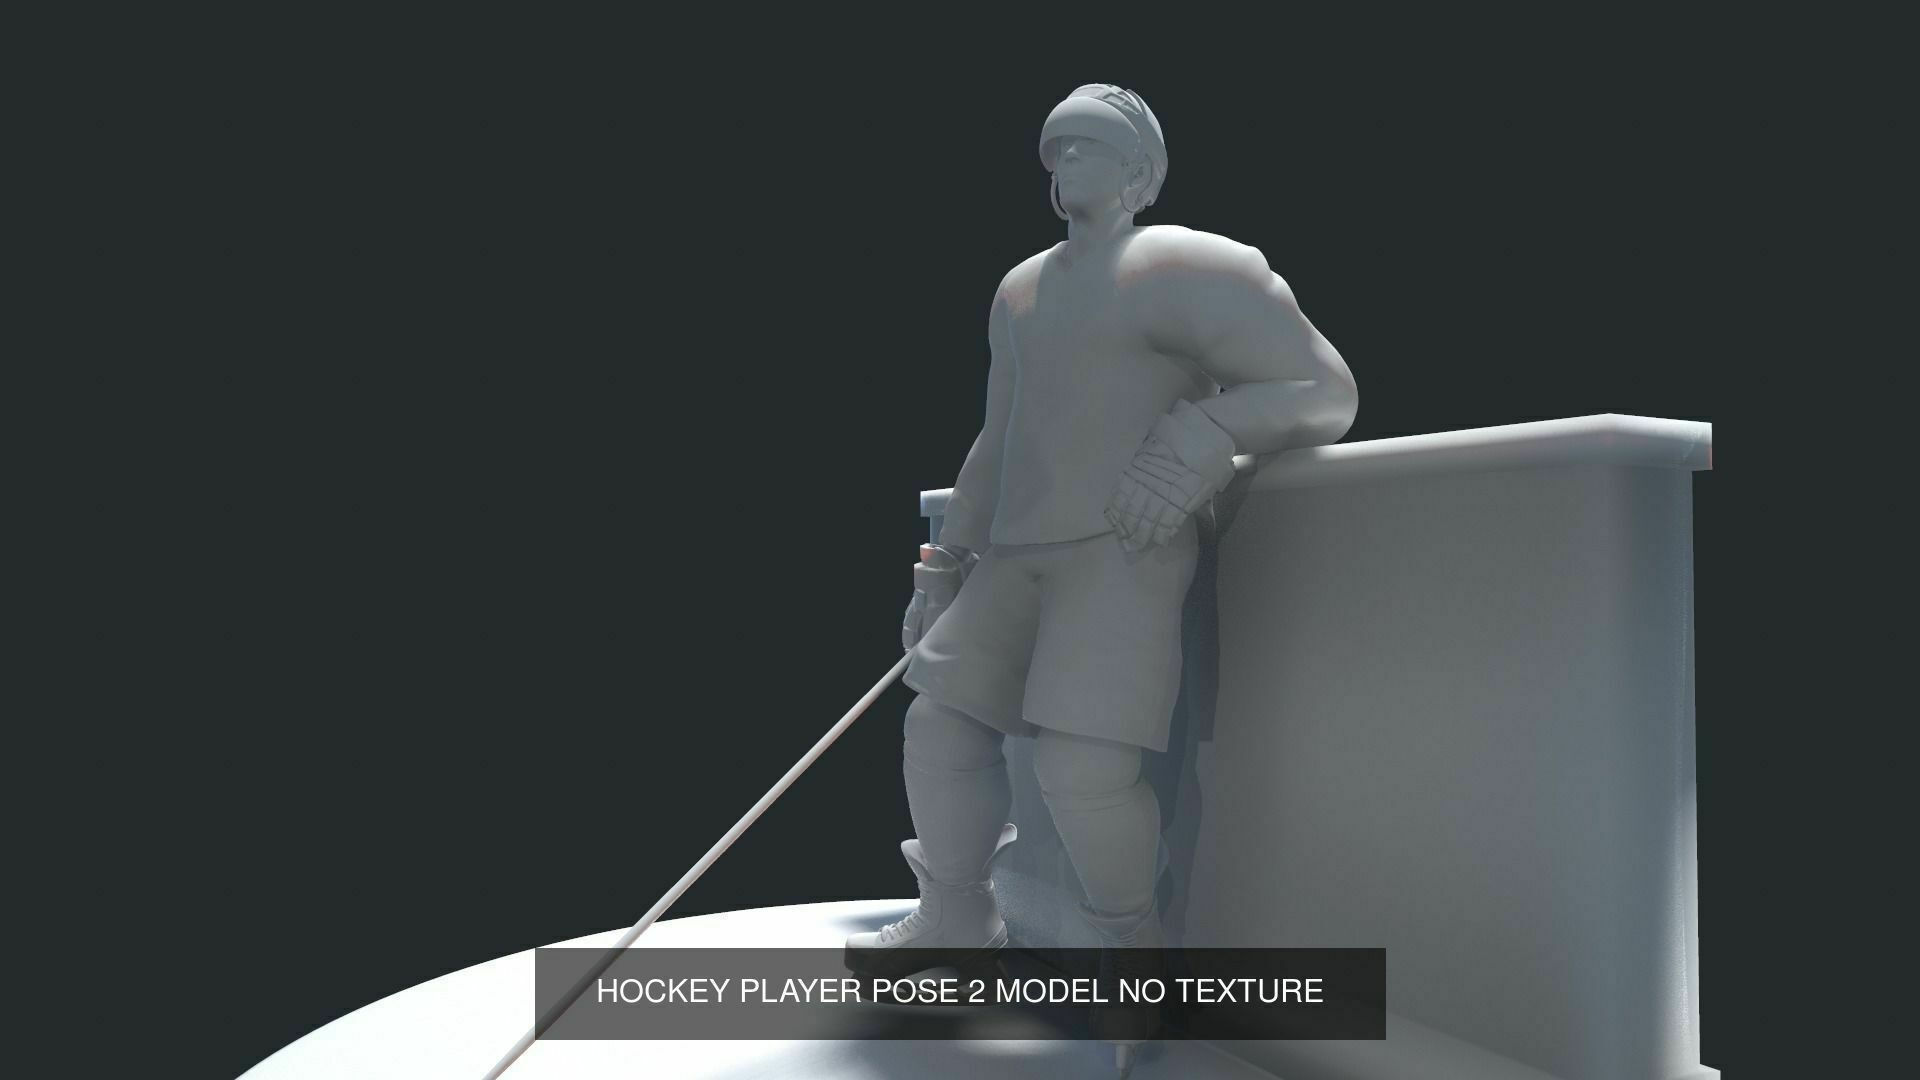 ultimate-hockey-poses-pack-model-no-texture-3d-model-max-obj-fbx-stl-tbscene (14).jpg Download OBJ file ULTIMATE HOCKEY POSES PACK MODEL NO TEXTURE 3D Model Collection • 3D printing template, NightCreativity